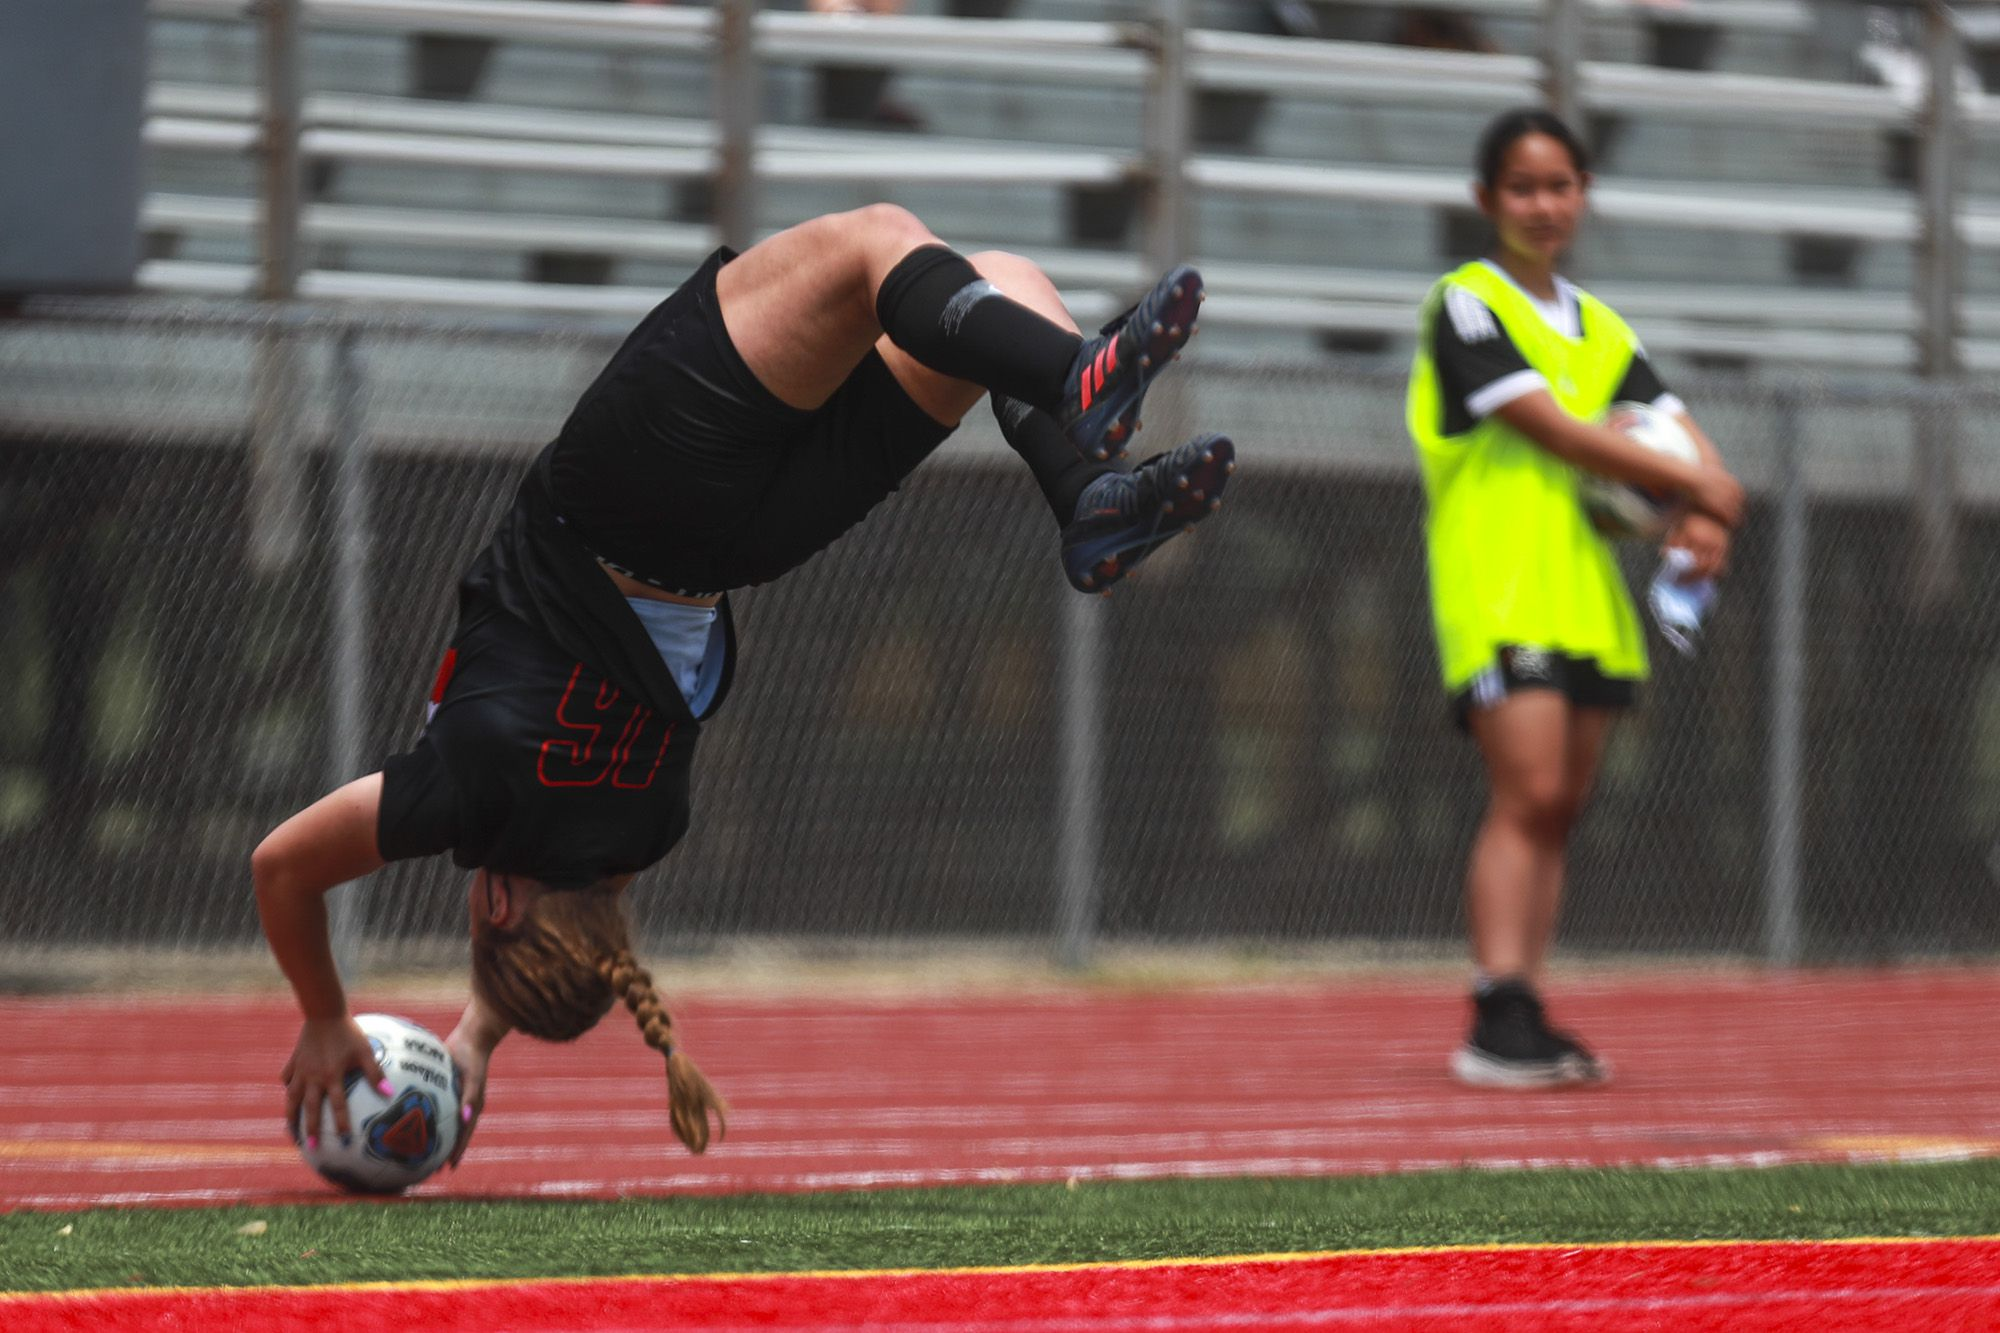 Lincoln-Way Central midfielder Grace Grundhofer launches the ball into the box from a flip throw-in on Saturday, May 22, 2021, at Lincoln-Way East High School in New Lenox, Ill.